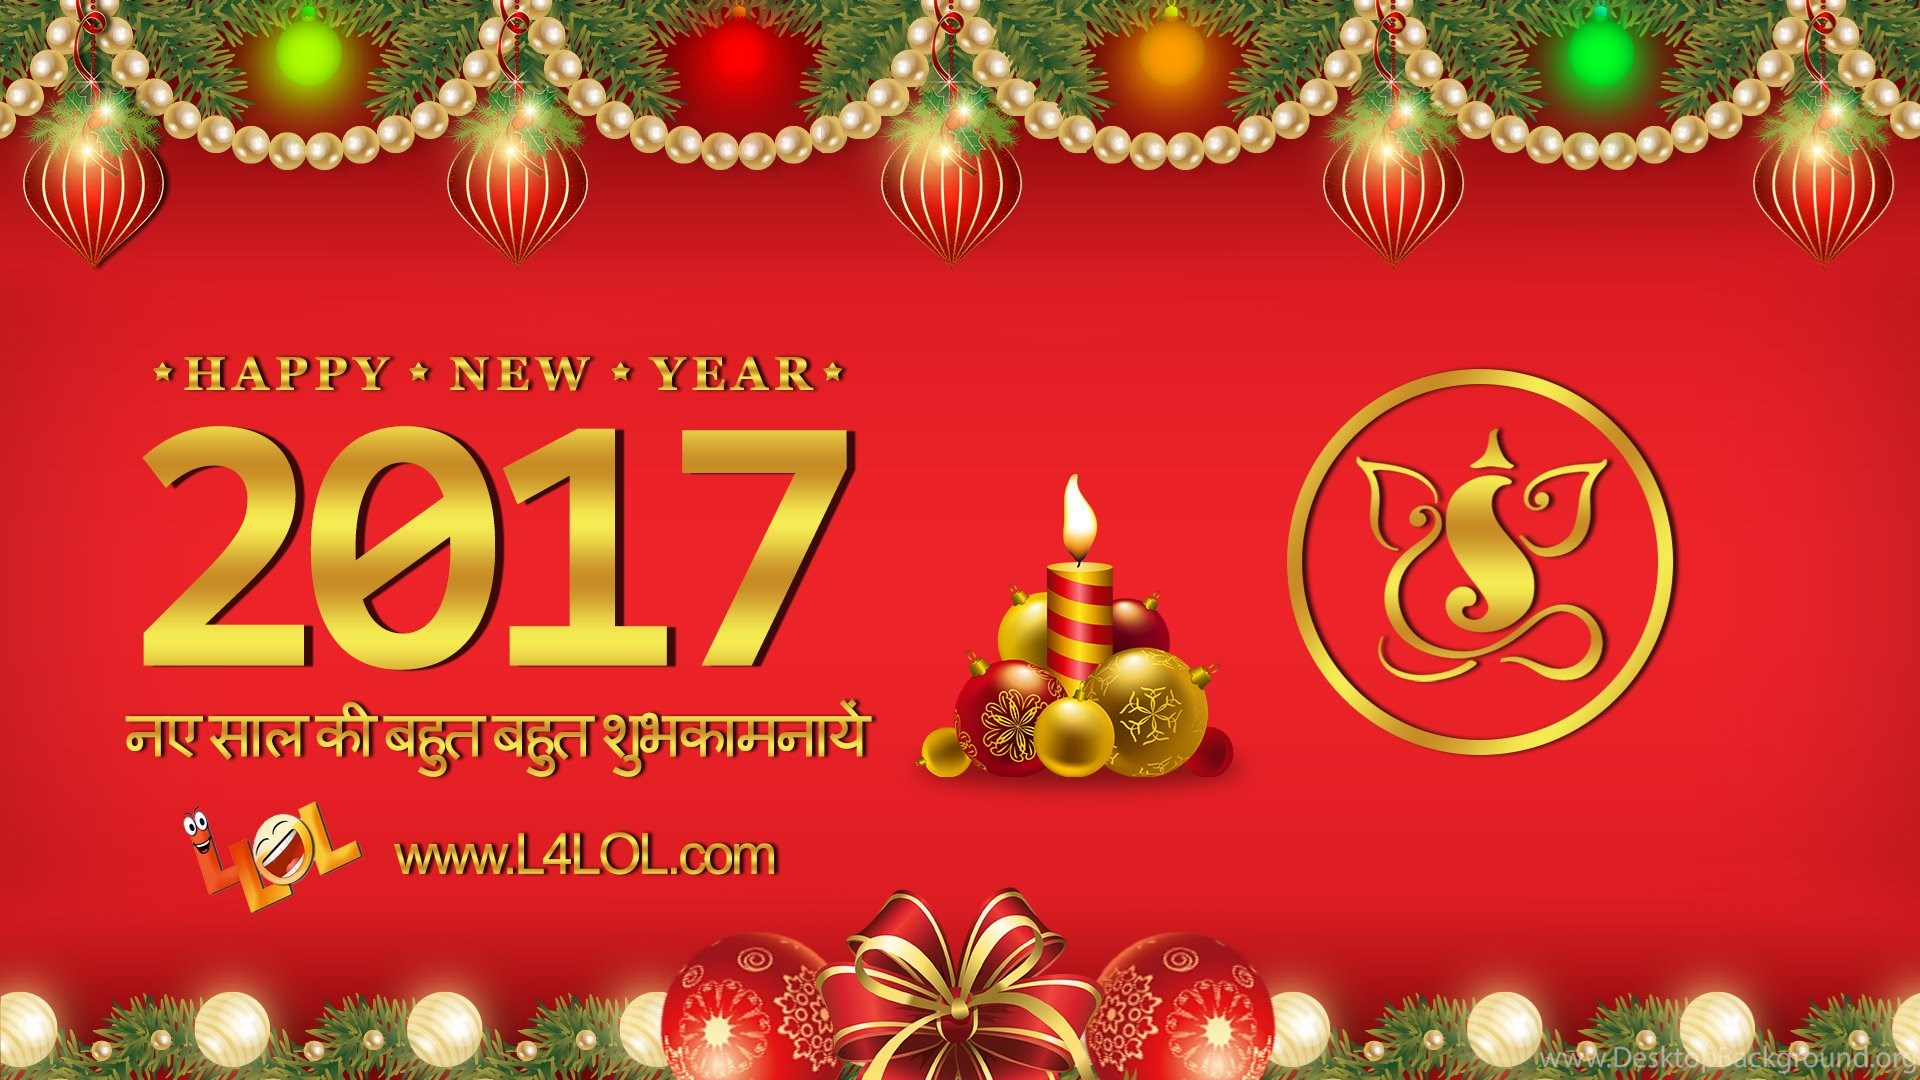 Happy New Year Wallpapers 2017 Merry Christmas Desktop Background